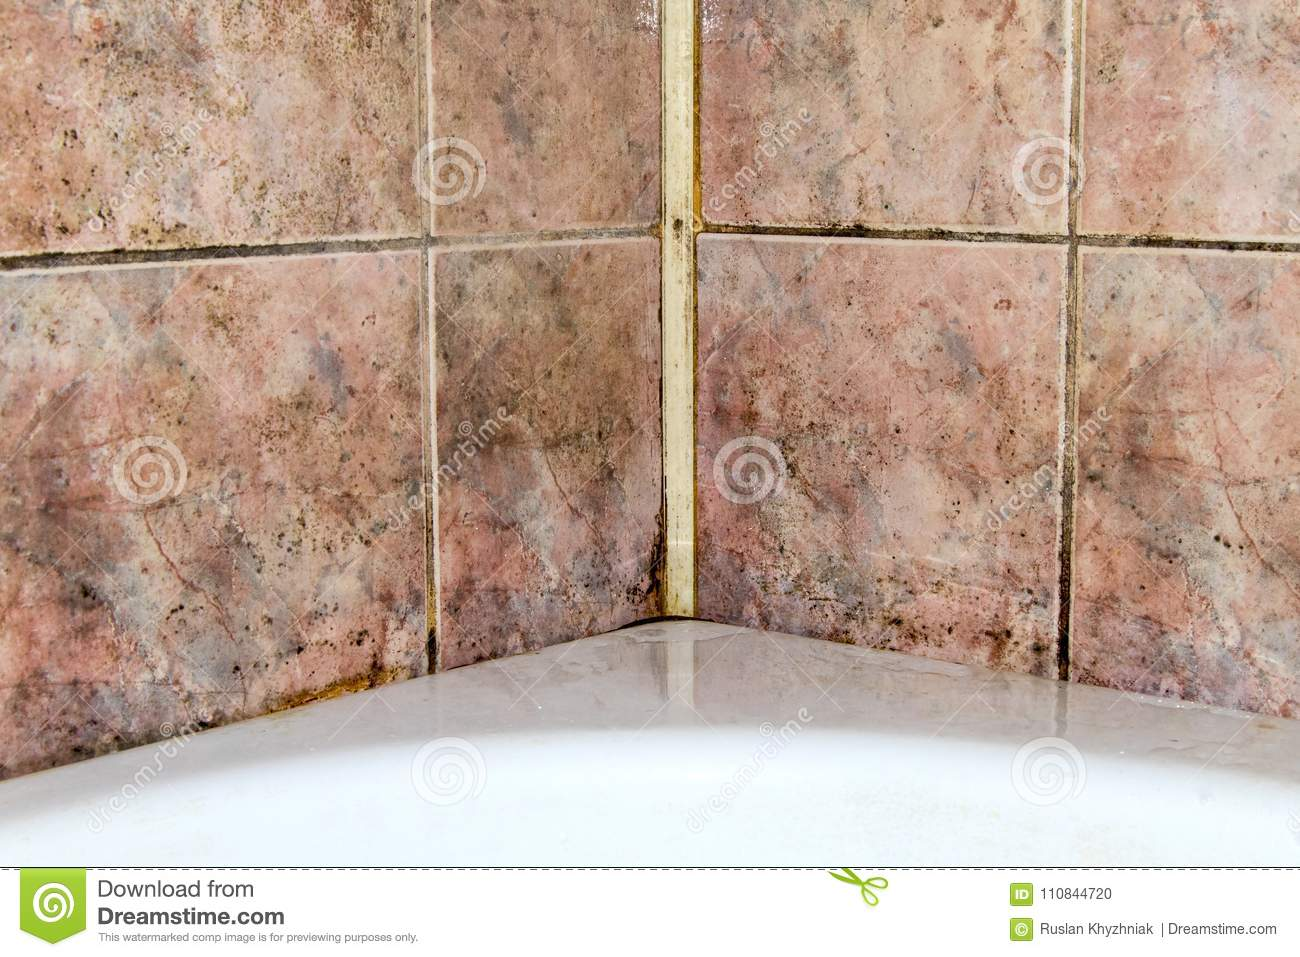 Fungus In The Bathroom Stock Photo Image Of Clean Ceiling 110844720